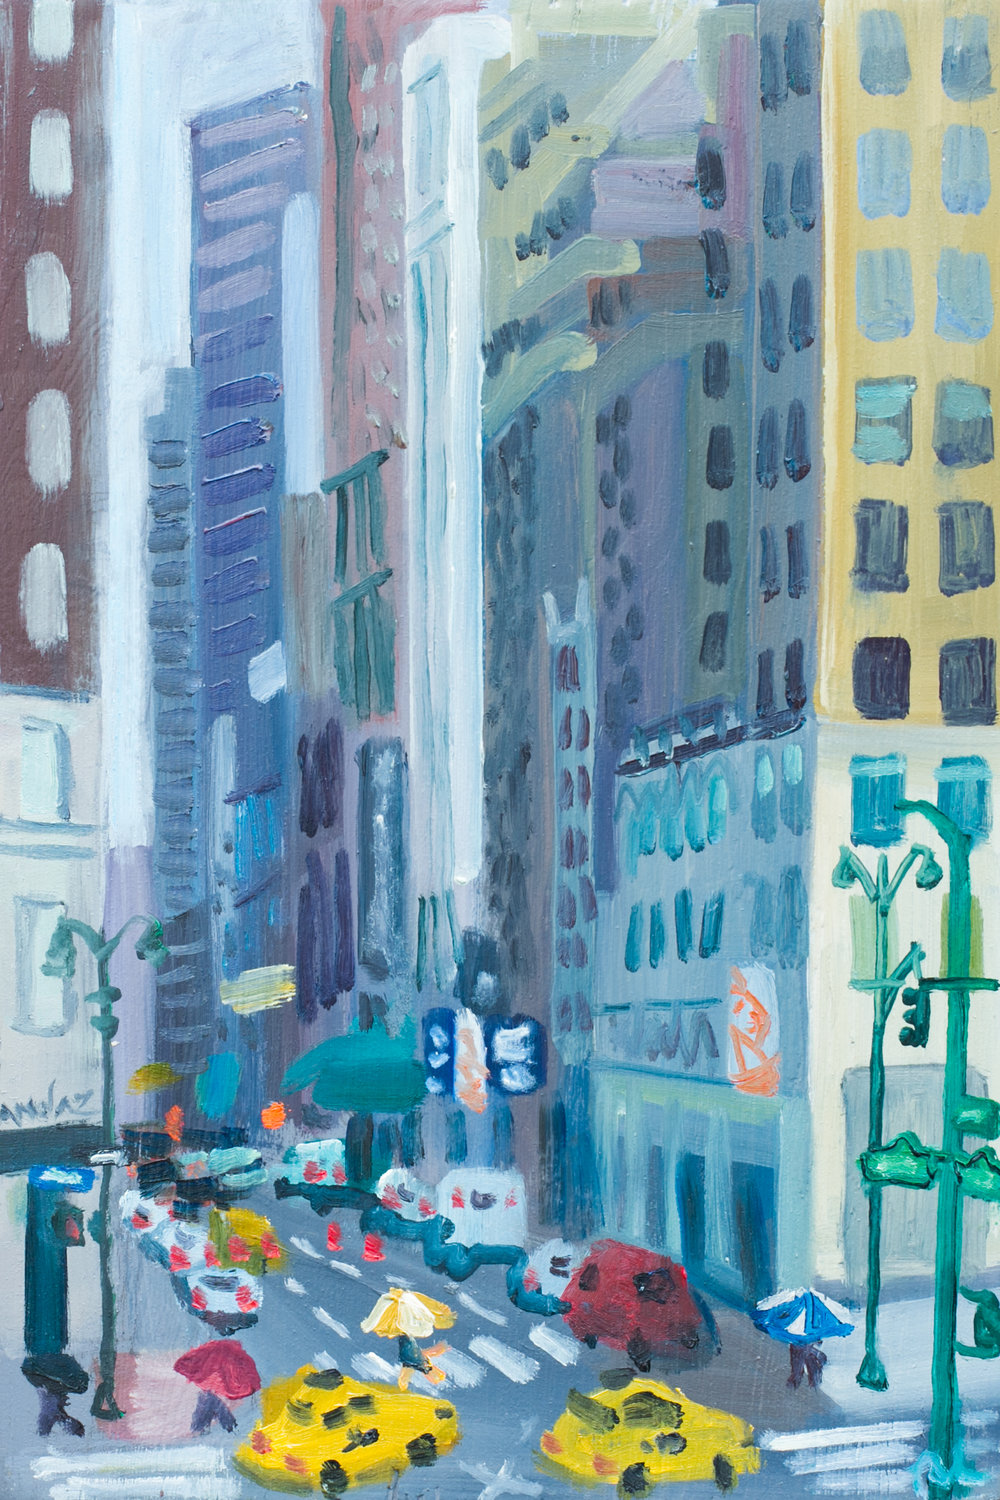 "Bryant Park #13 - June 3, 2016 - 12"" x 8"" - oil on panel"